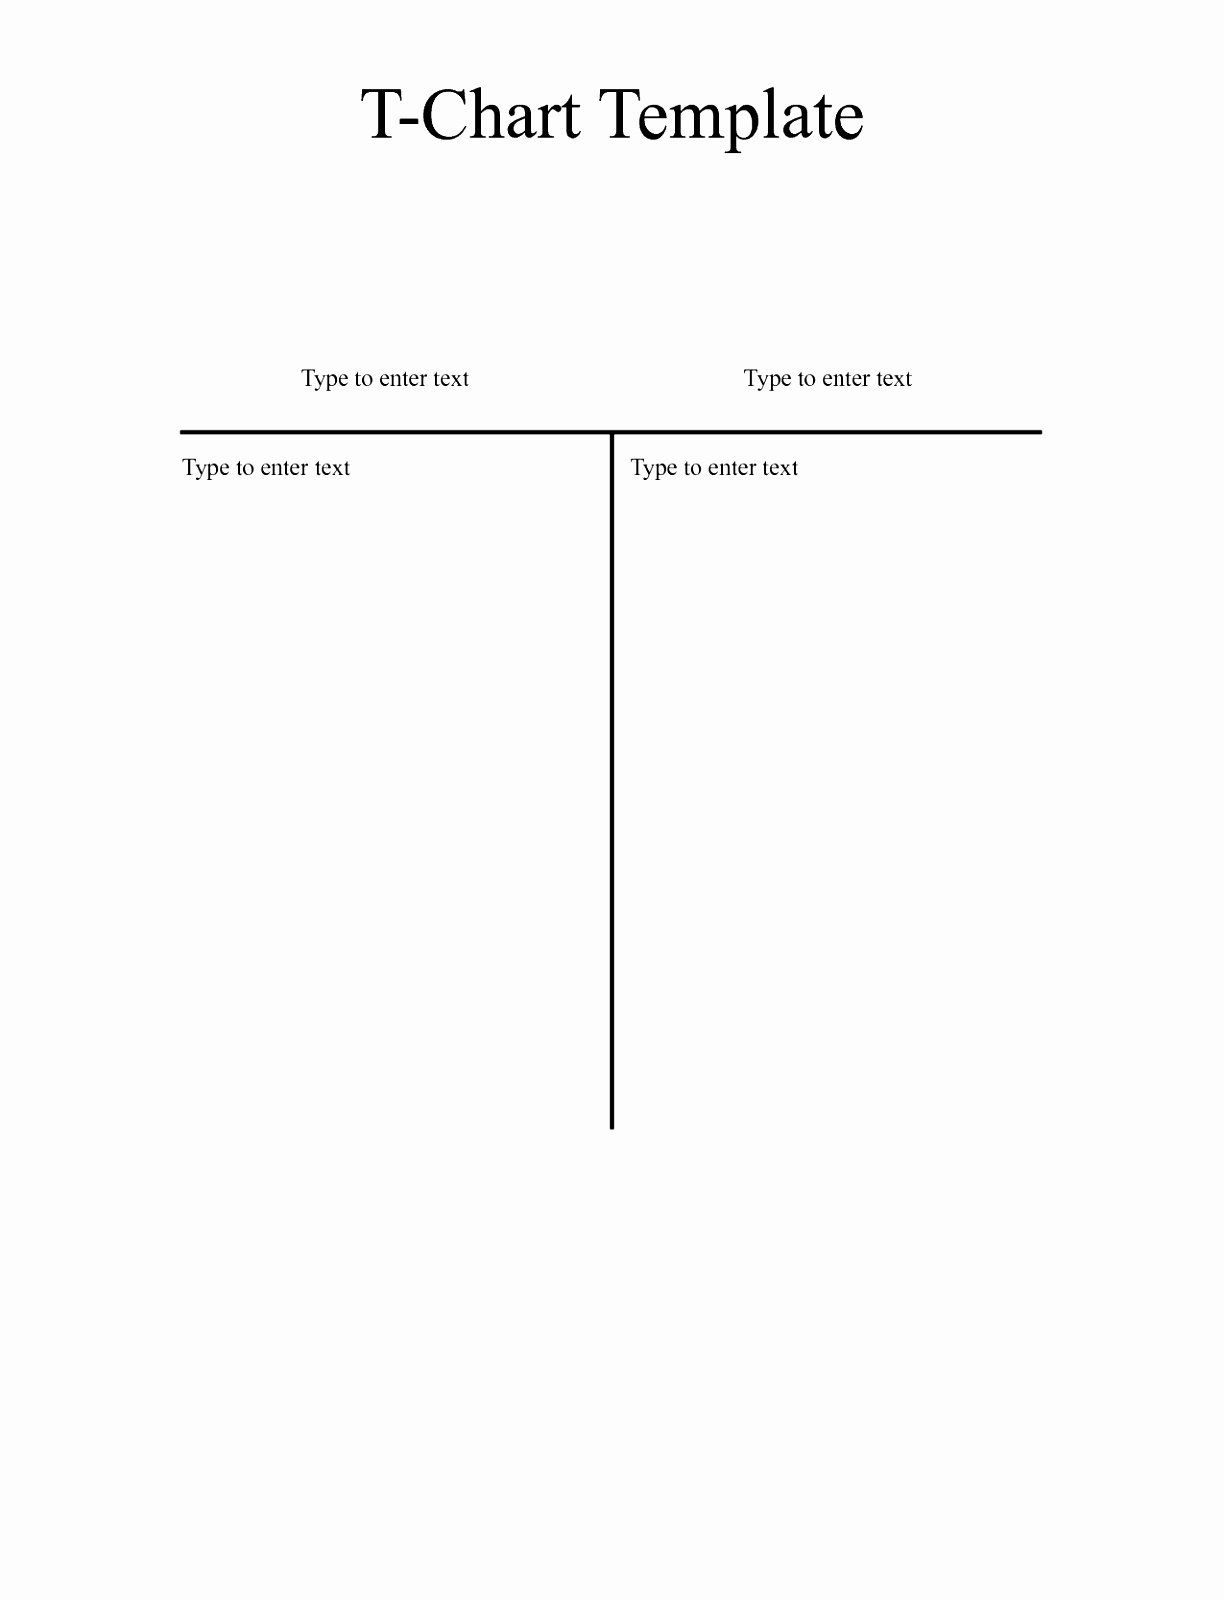 T Chart Template Word Best Of 6 T Chart Template For Word